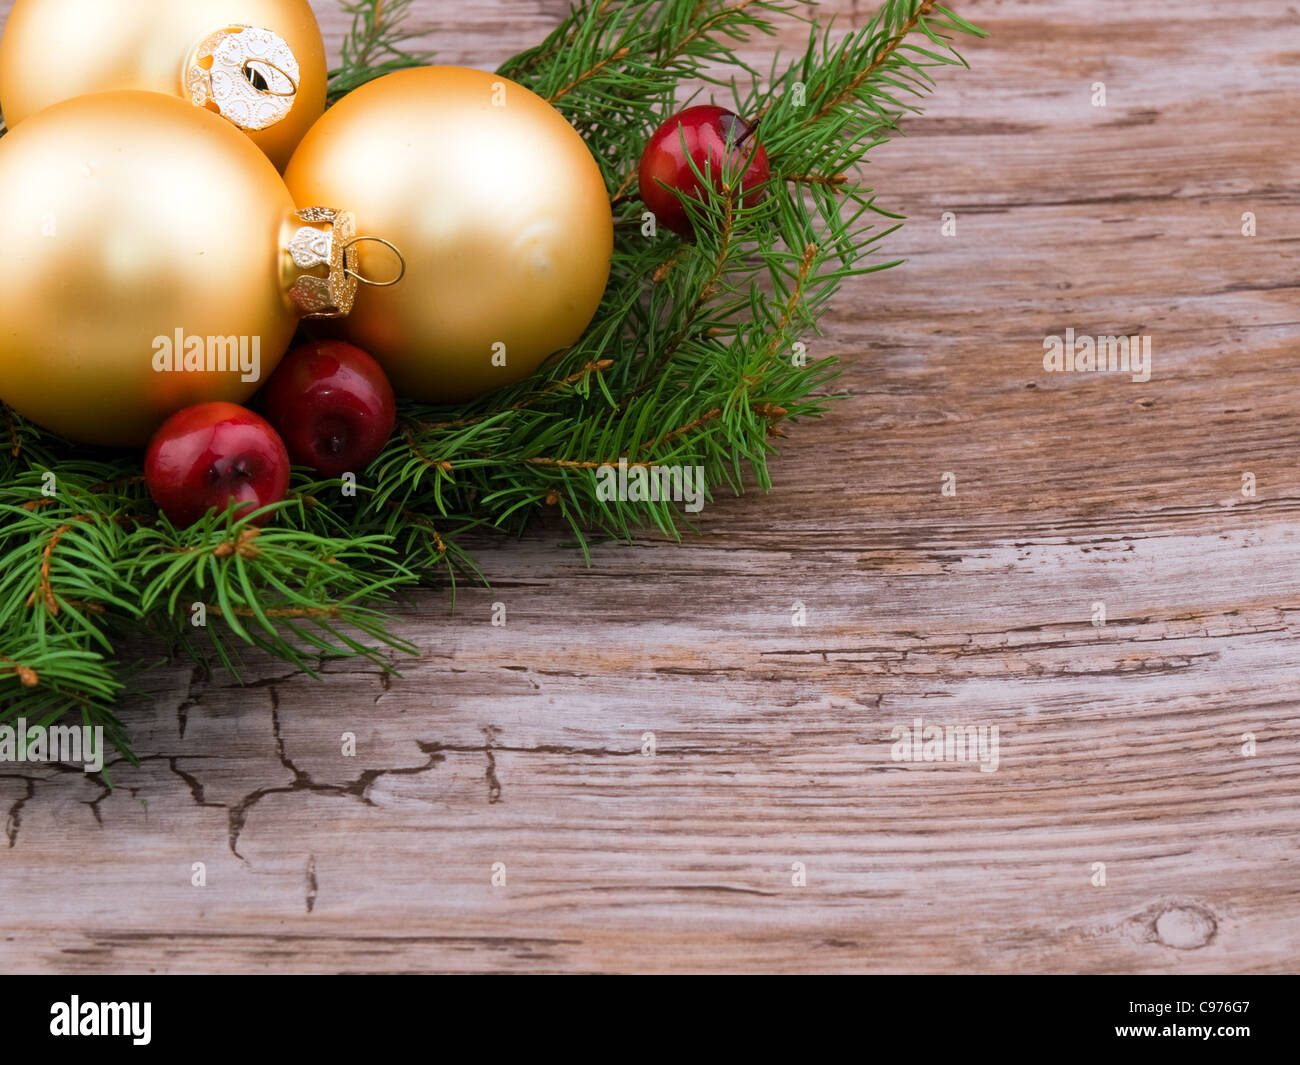 Golden christmas ball with fresh spruce branch on old wooden background - Stock Image